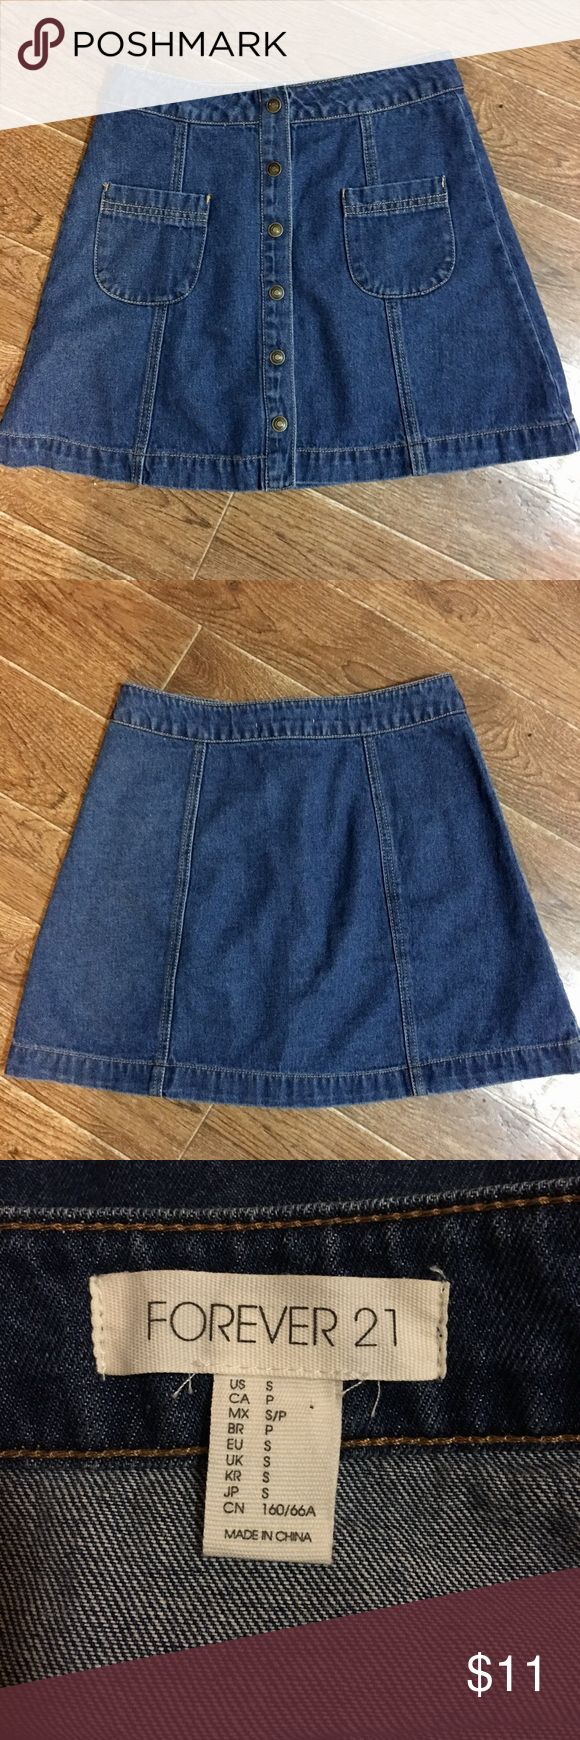 Forever 21 - adorable and versatile denim skirt Forever 21 brand adorable and versatile denim skirt size small. In fantastic preowned condition. Please check out all my other boutique items, and remember to bundle and save. Super fast shipping! Forever 21 Skirts Mini